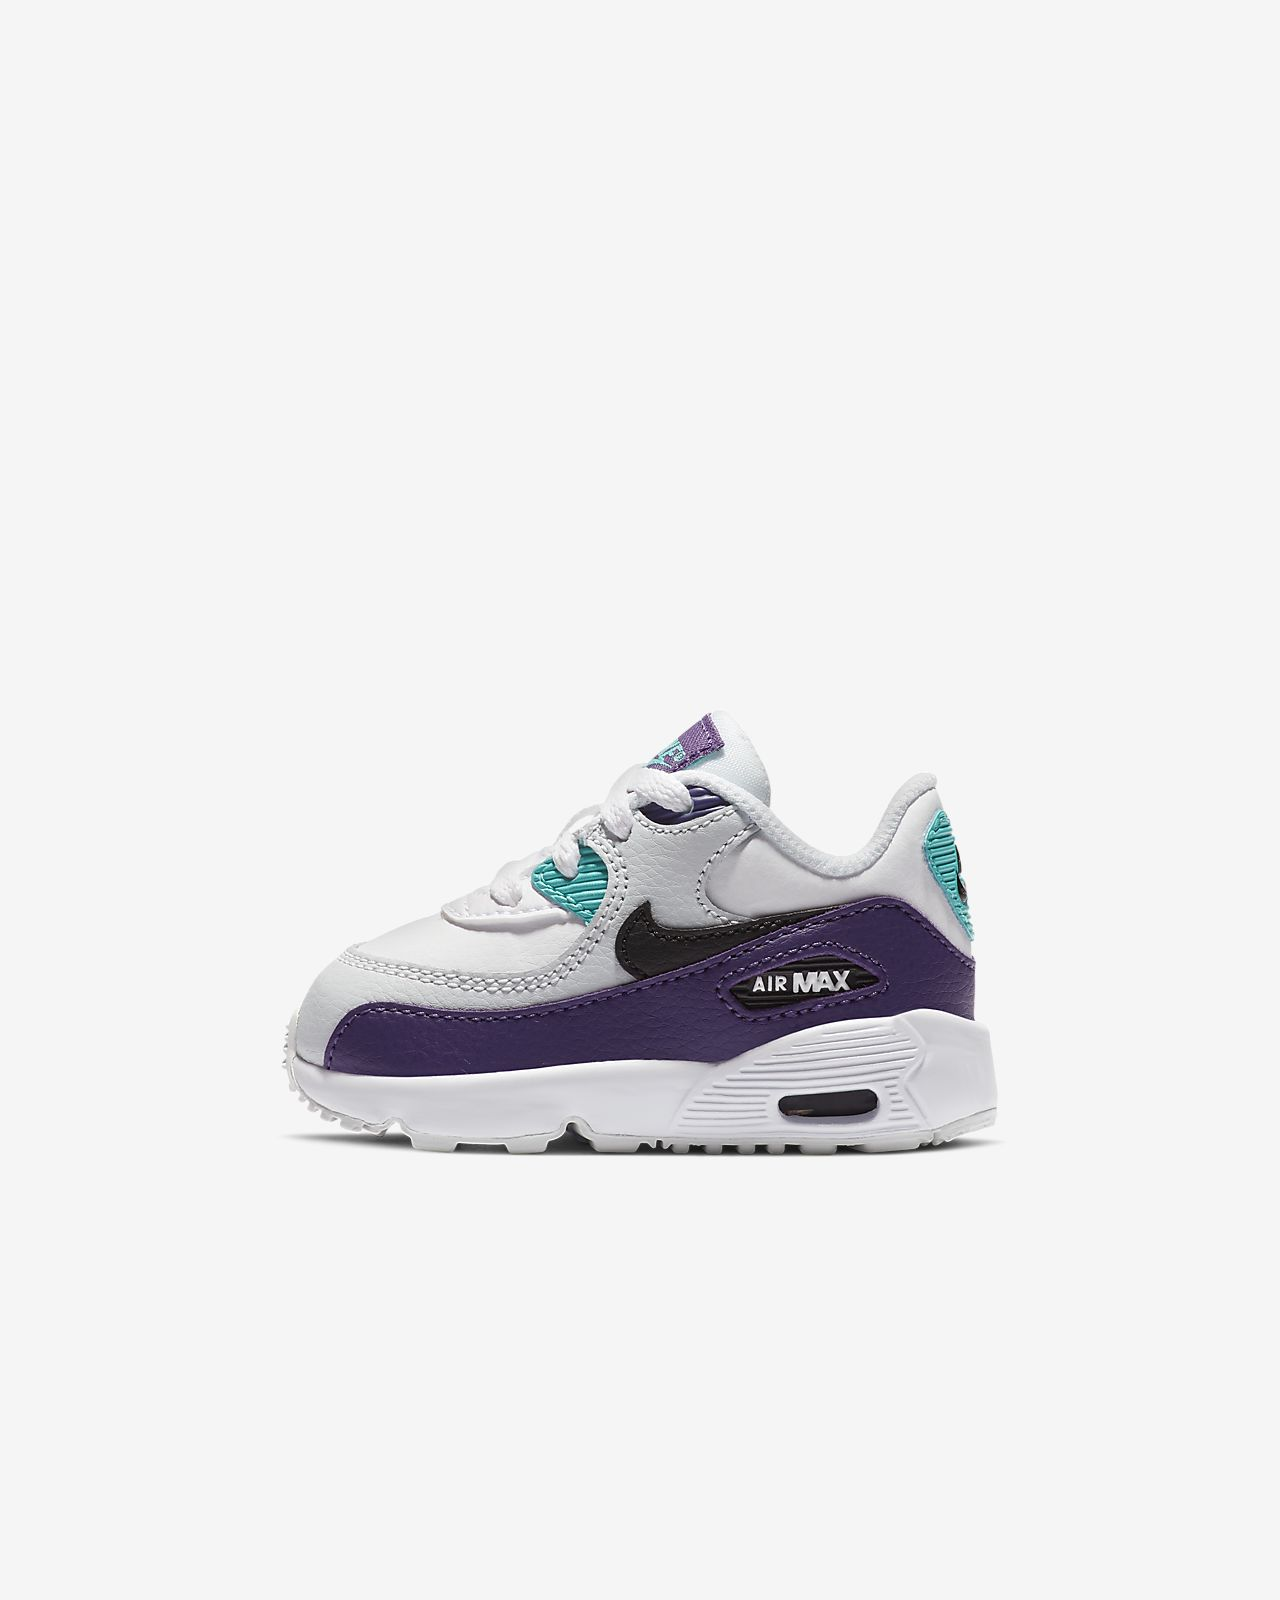 low priced 2dd16 71491 ... Nike Air Max 90 Leather Zapatillas - Bebé e infantil